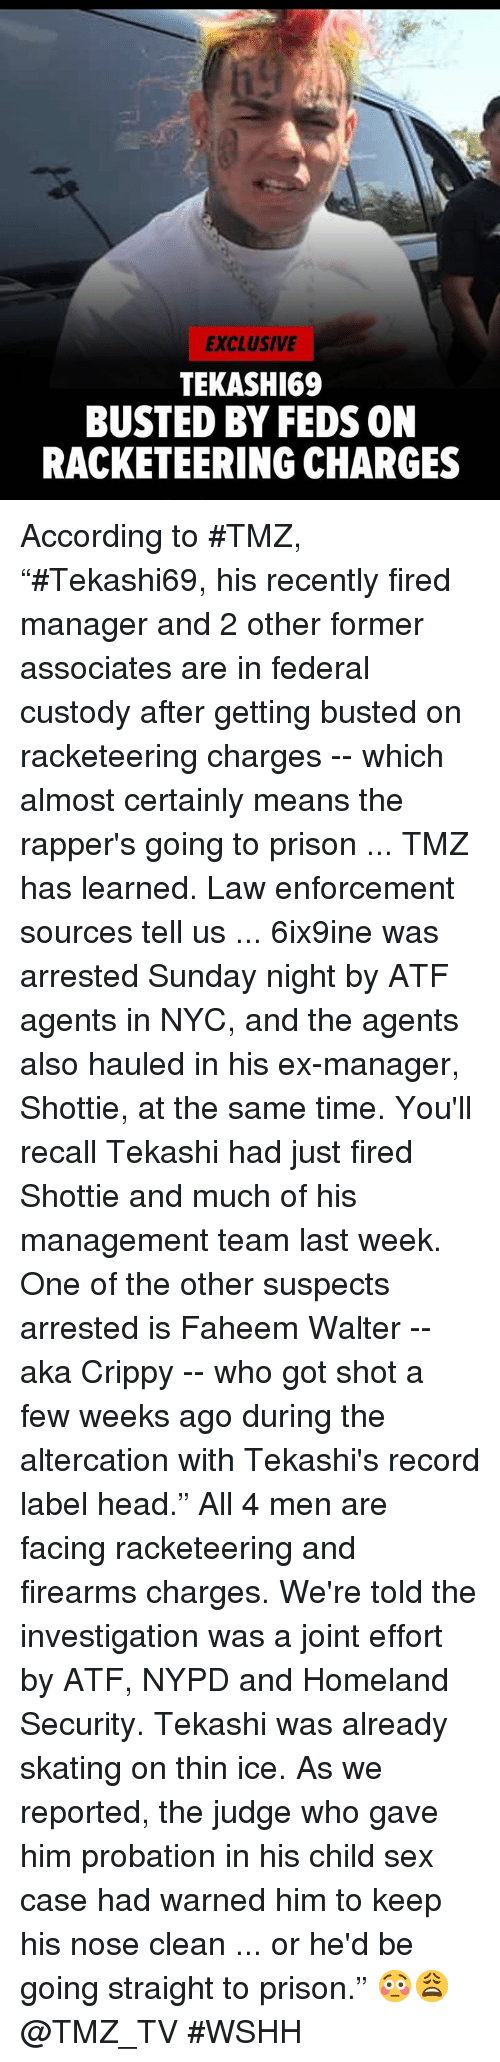 "Homeland: EXCLUSIVE  TEKASHI69  BUSTED BY FEDS ON  RACKETEERING CHARGES According to #TMZ, ""#Tekashi69, his recently fired manager and 2 other former associates are in federal custody after getting busted on racketeering charges -- which almost certainly means the rapper's going to prison ... TMZ has learned.  Law enforcement sources tell us ... 6ix9ine was arrested Sunday night by ATF agents in NYC, and the agents also hauled in his ex-manager, Shottie, at the same time. You'll recall Tekashi had just fired Shottie and much of his management team last week.  One of the other suspects arrested is Faheem Walter -- aka Crippy -- who got shot a few weeks ago during the altercation with Tekashi's record label head."" All 4 men are facing racketeering and firearms charges. We're told the investigation was a joint effort by ATF, NYPD and Homeland Security.  Tekashi was already skating on thin ice. As we reported, the judge who gave him probation in his child sex case had warned him to keep his nose clean ... or he'd be going straight to prison."" 😳😩 @TMZ_TV #WSHH"